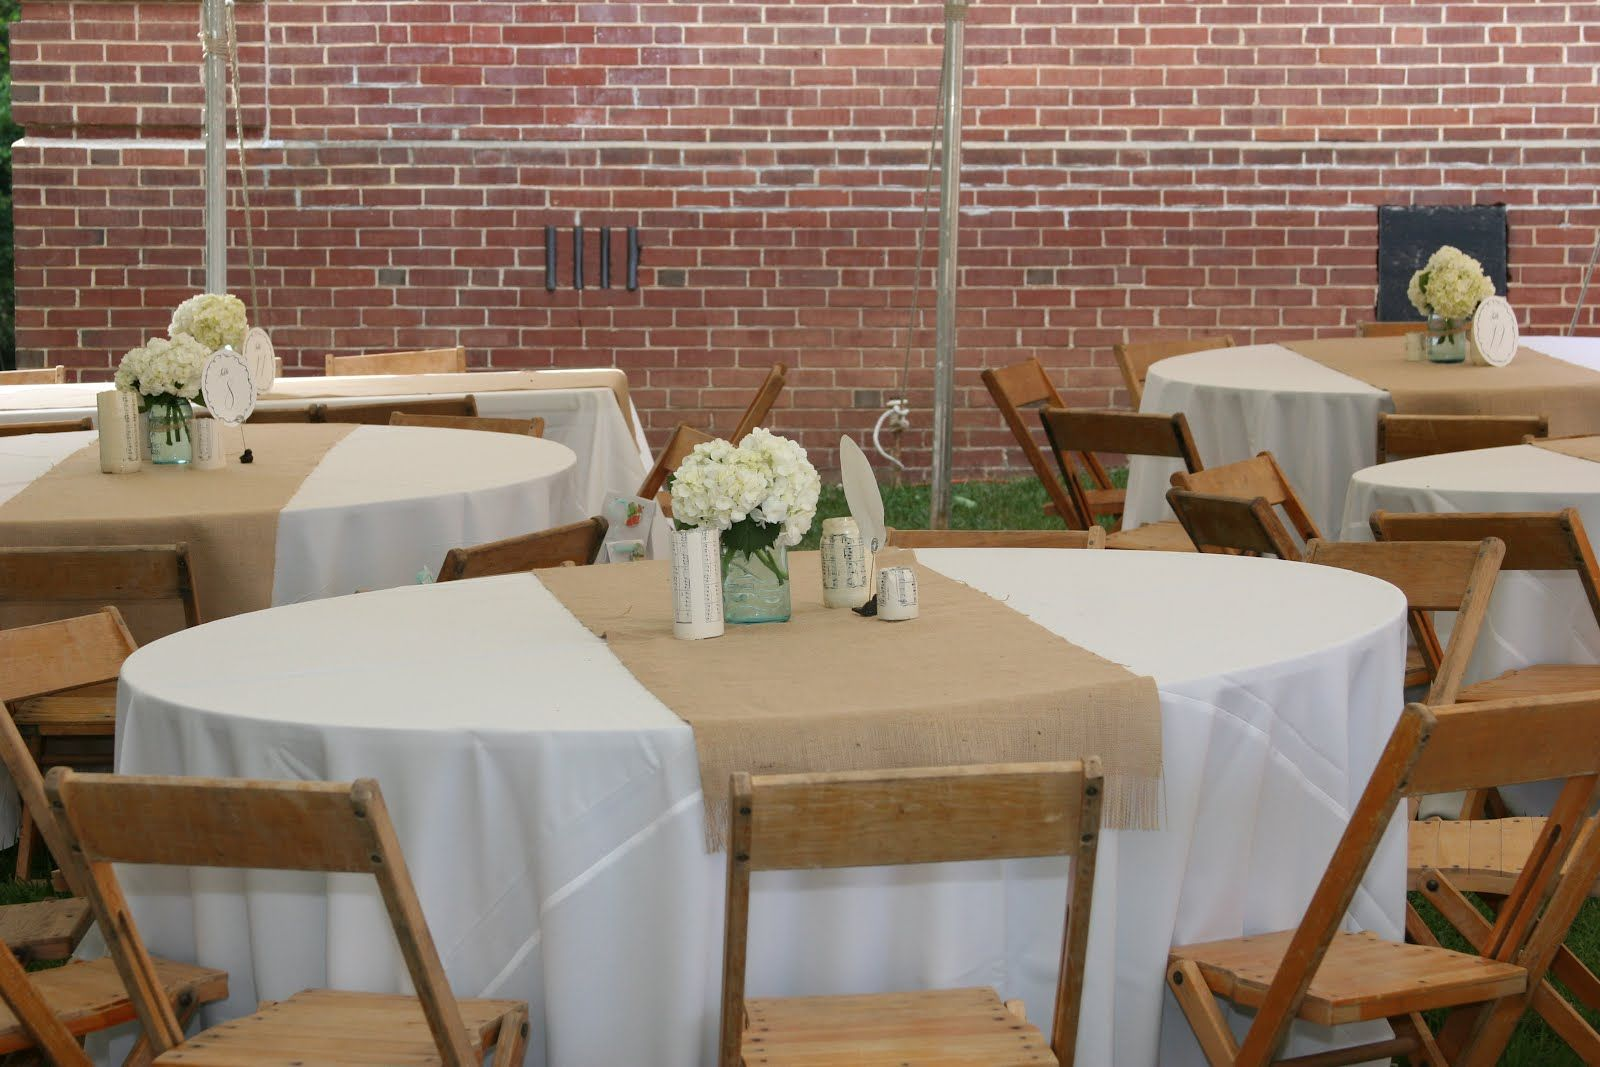 Table Runner On A Round Table.Teaser Wedding Reception Details Mitzvah Lunch Ideas Wedding